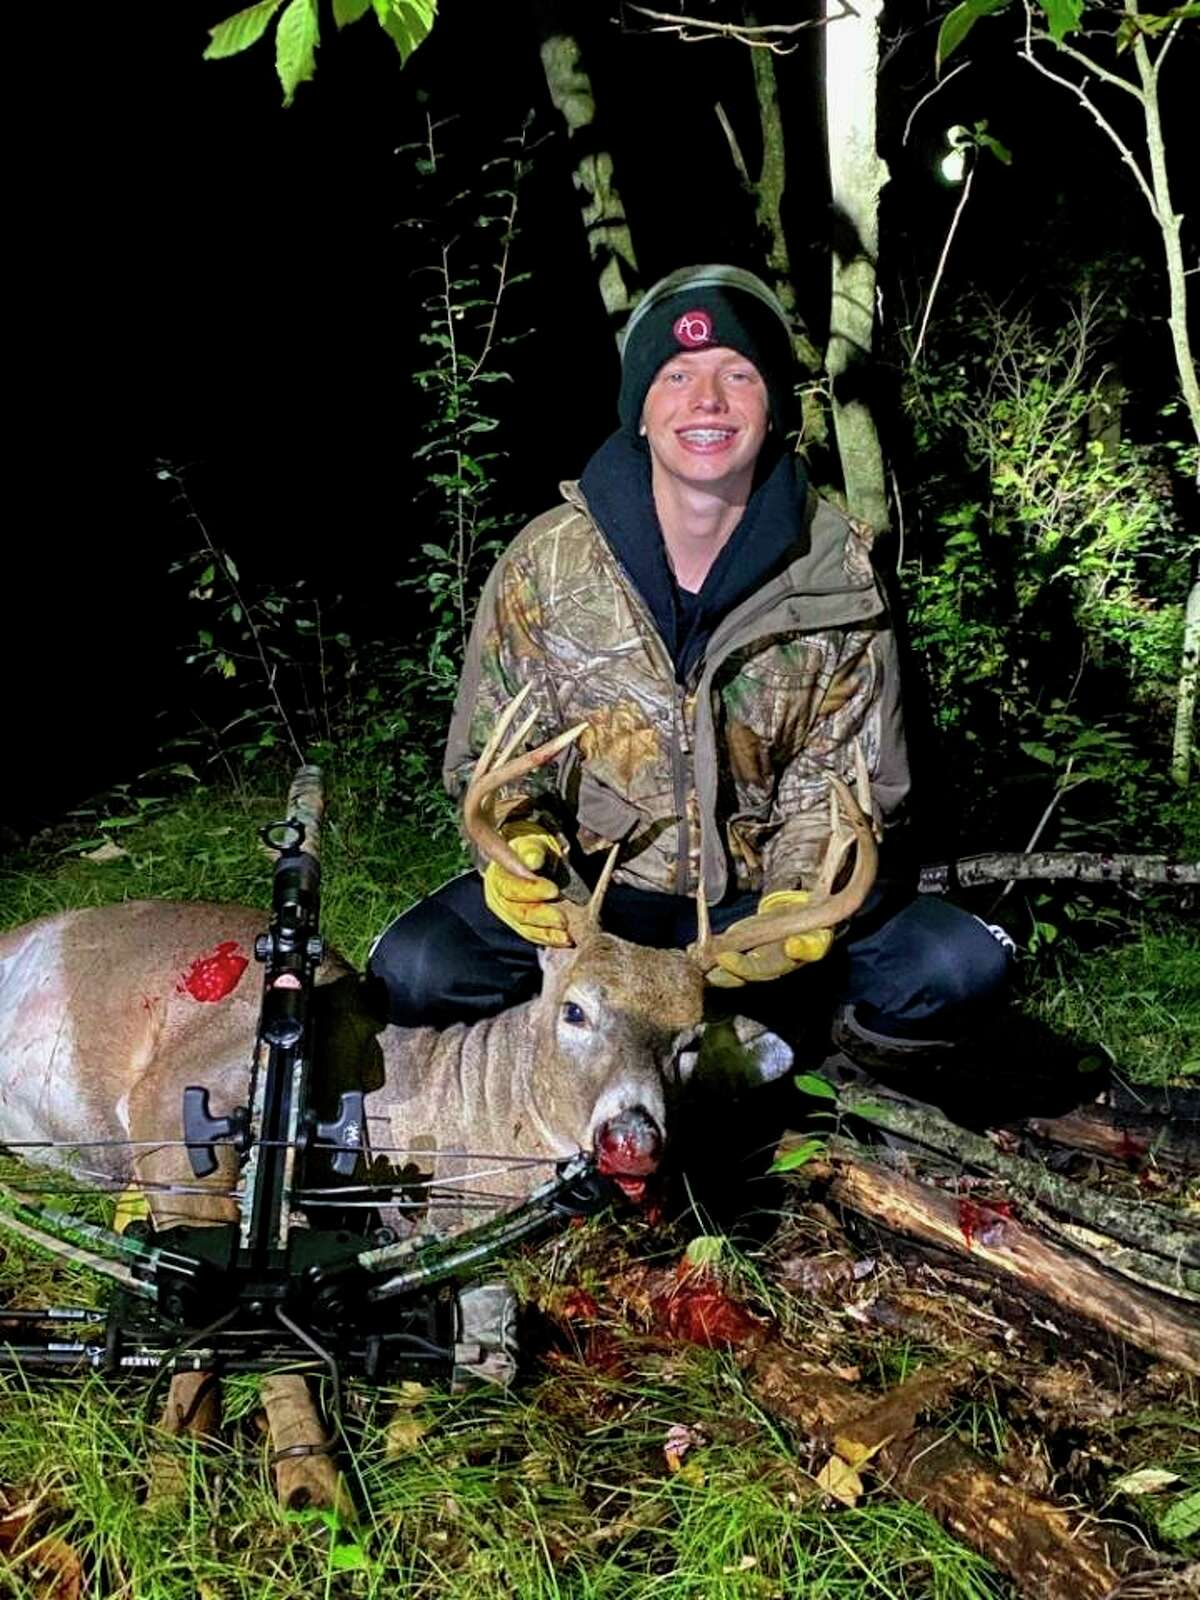 Fischer Morrison has been a successful bow hunter this season. (Courtesy photo)